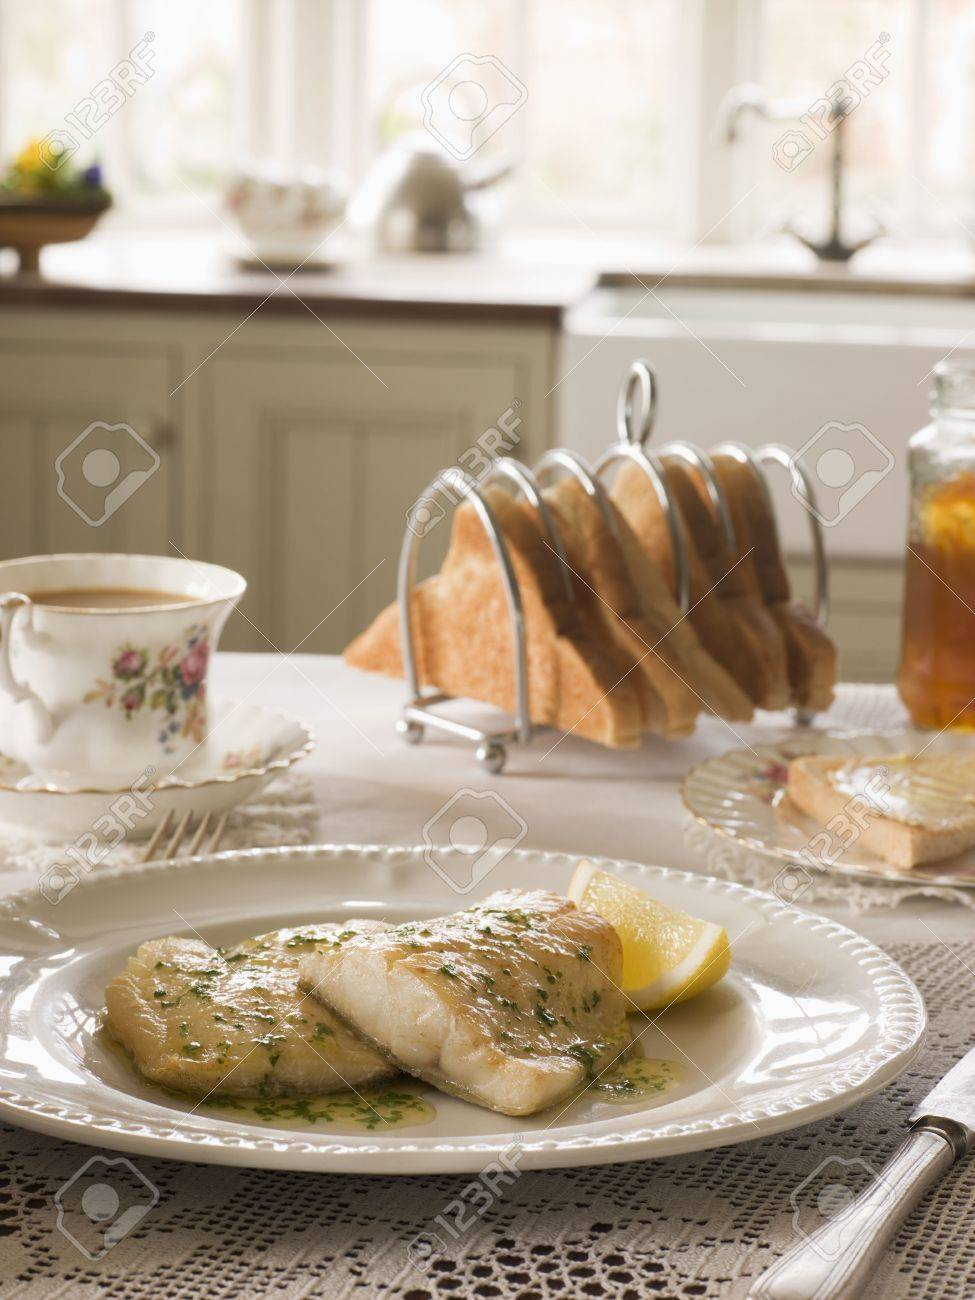 Smoked Haddock with Herb Butter and Toast Stock Photo - 3449561